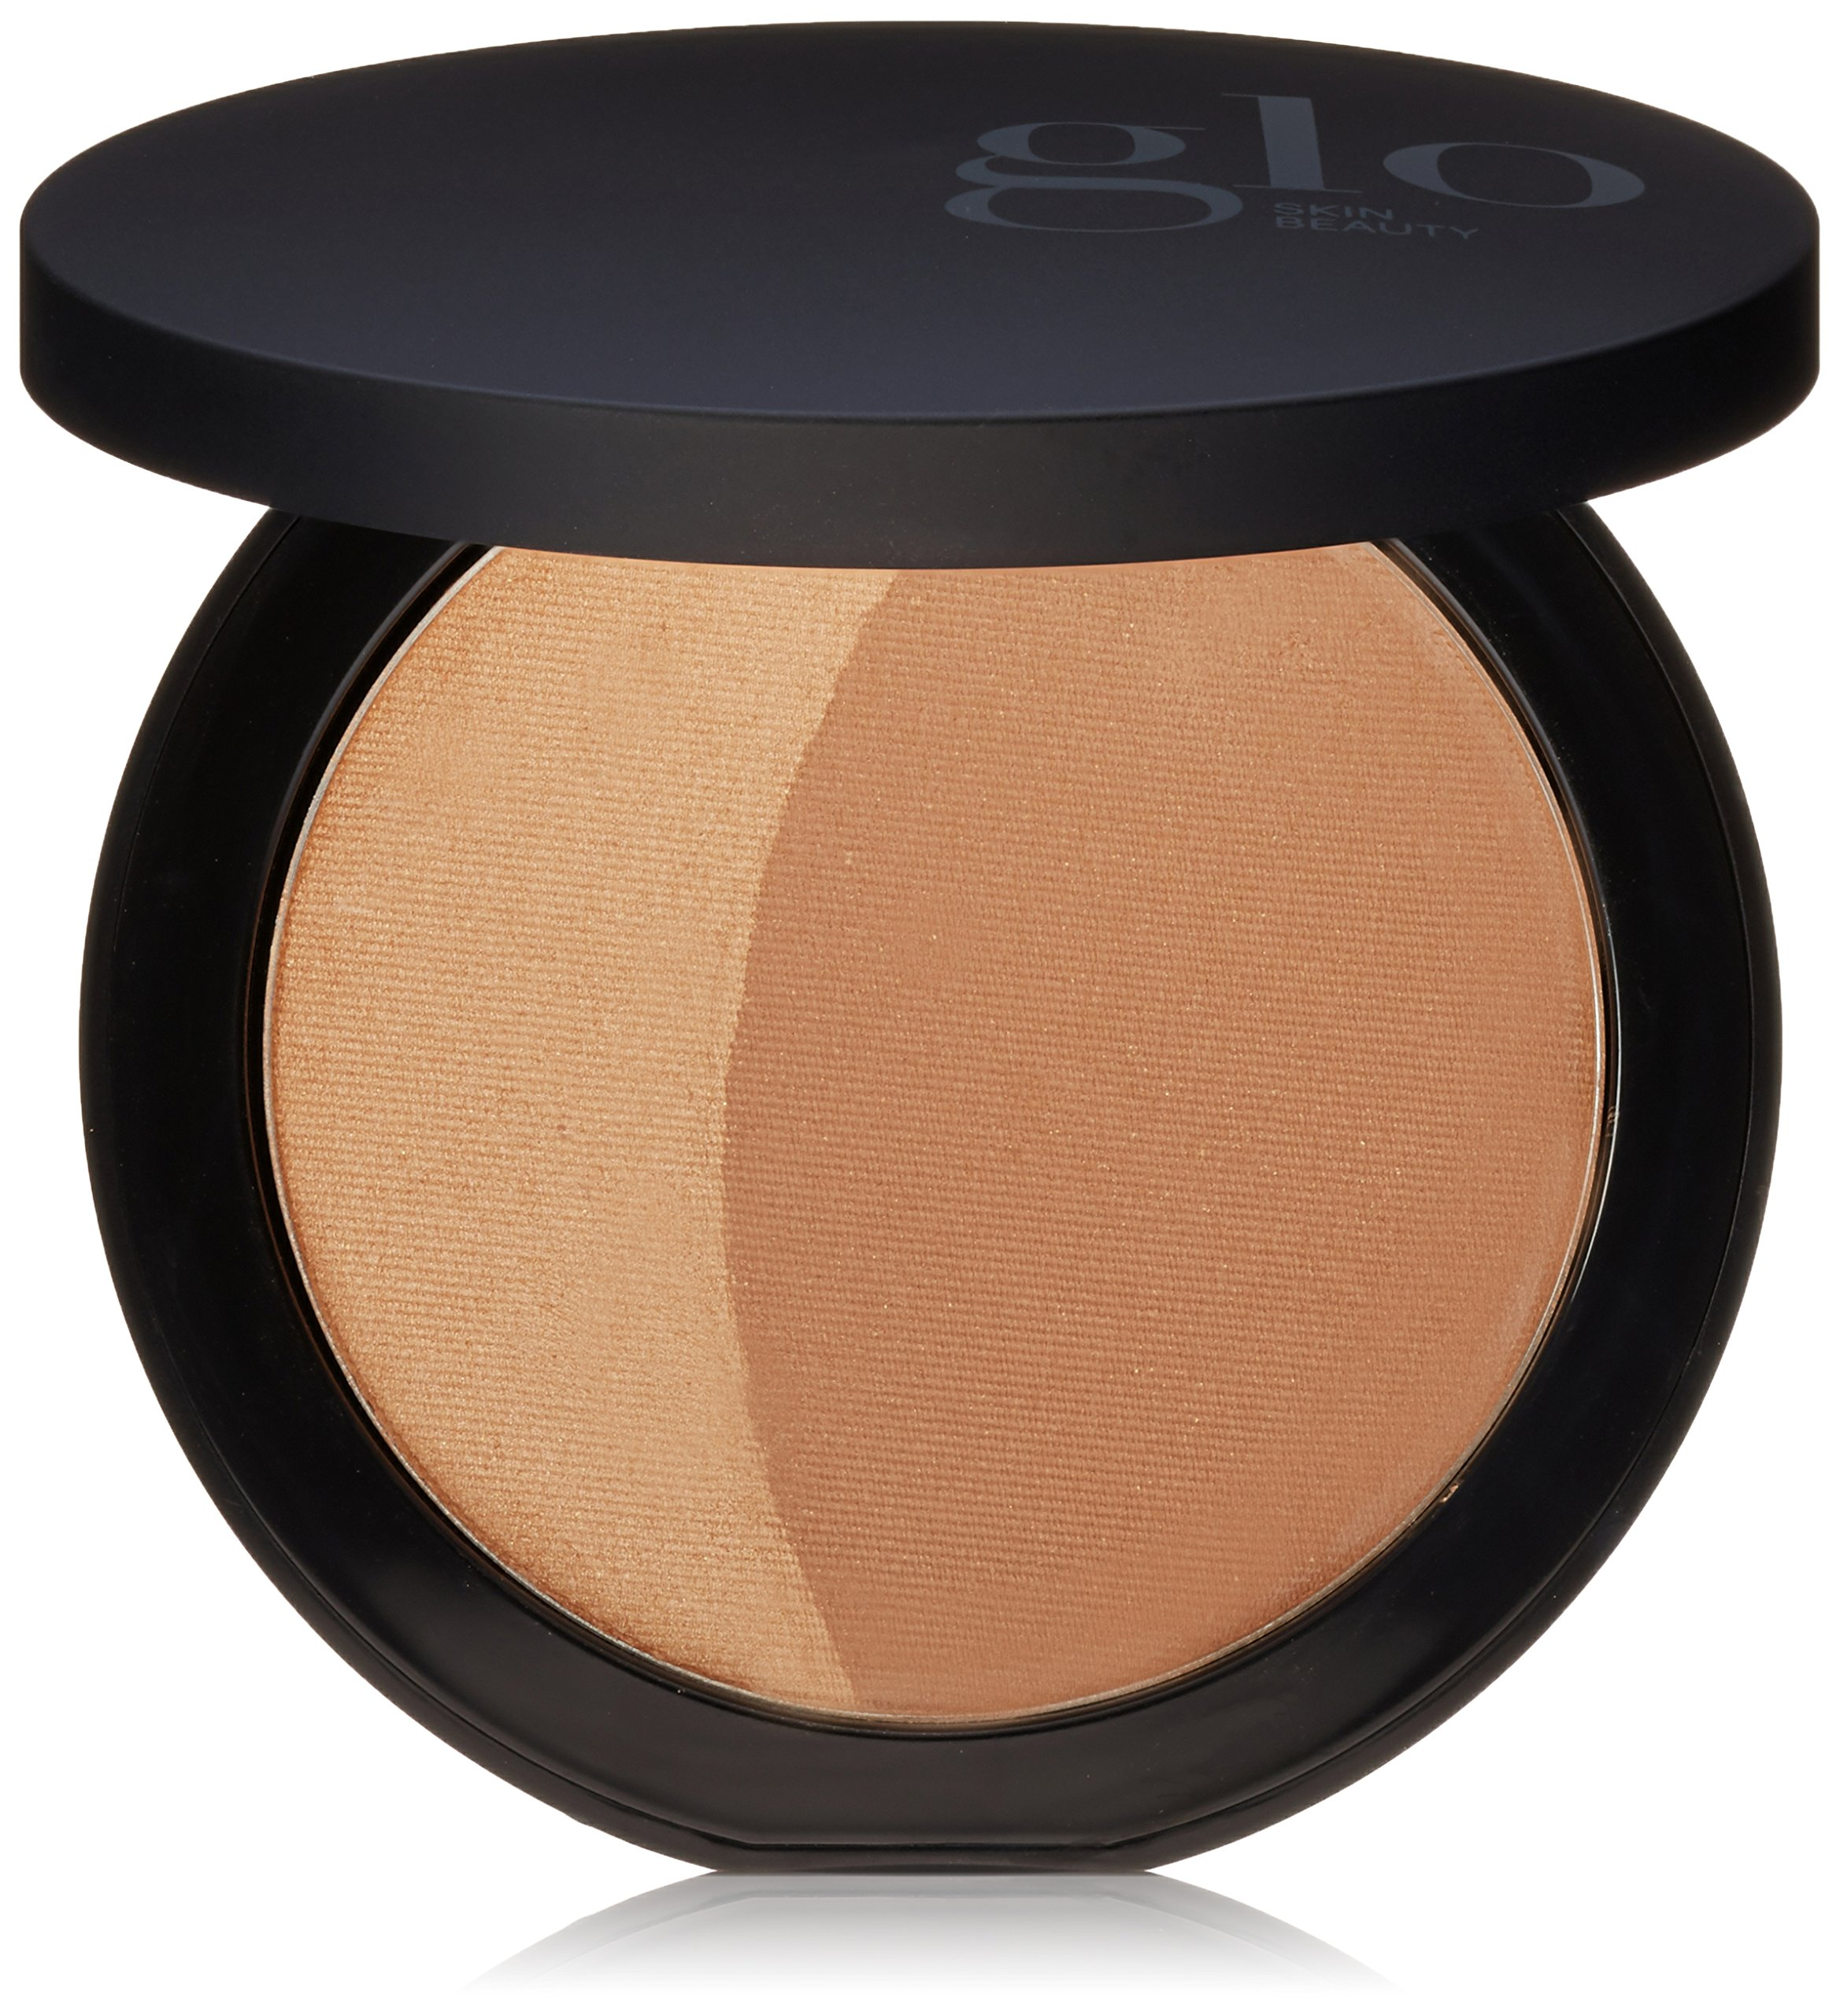 Glo Skin Beauty Bronze in Sunkiss | Bronzer Powder, 2 Shades | Noncomedogenic, Cruelty Free and Talc Free Mineral Makeup by Glo Skin Beauty